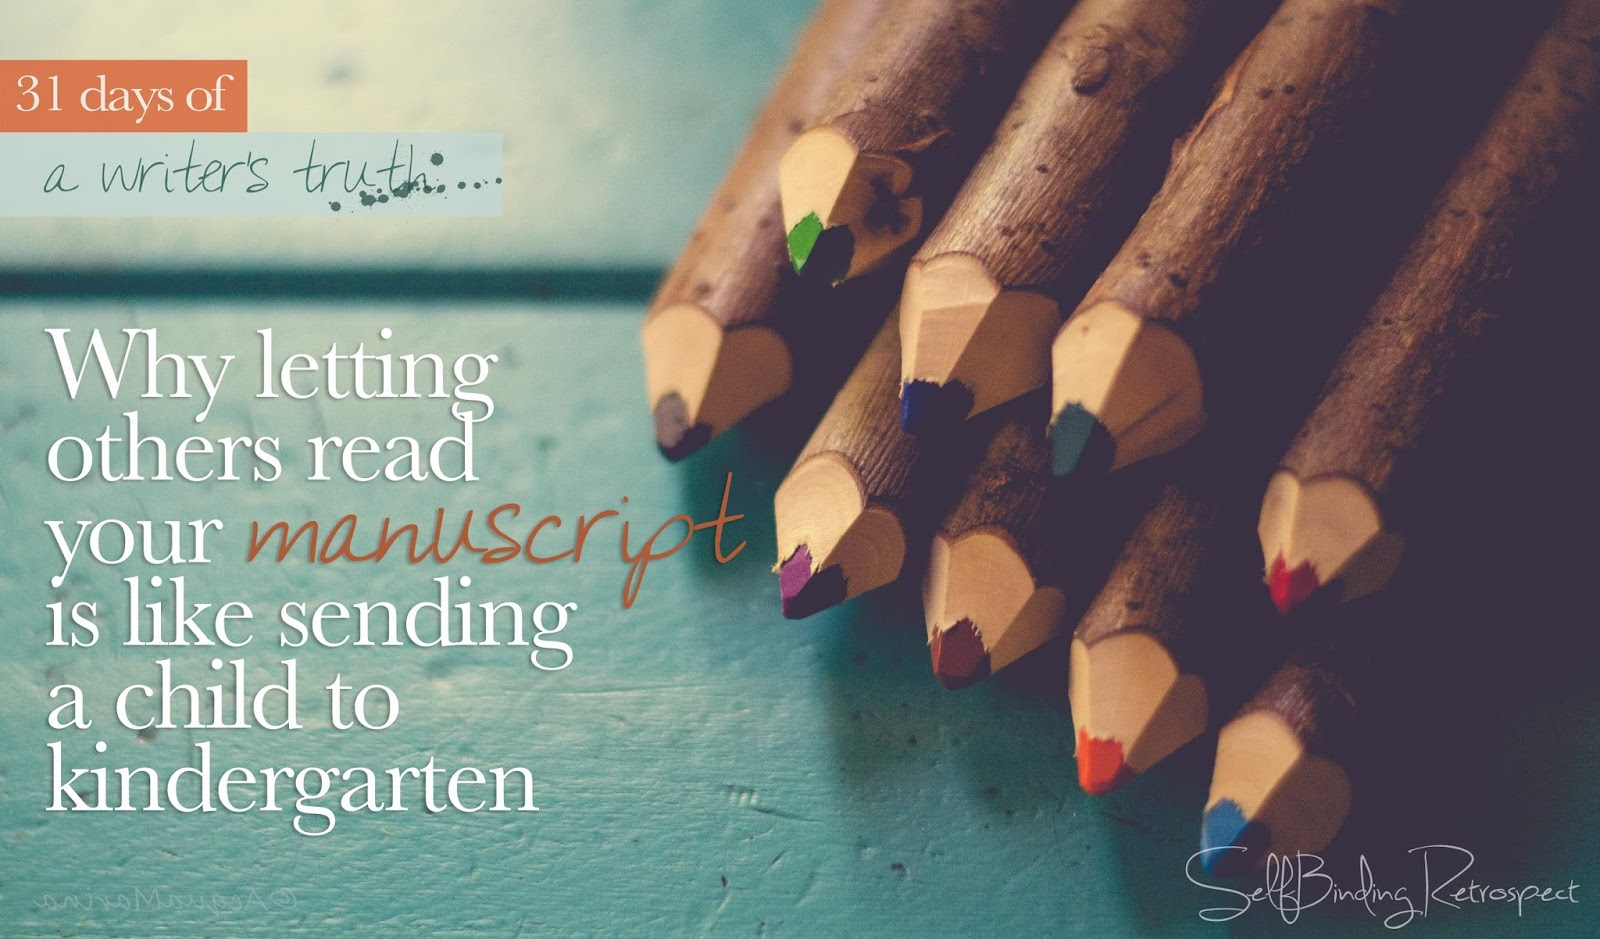 why letting others read your manuscript is like sending a child to kindergarten #write31days